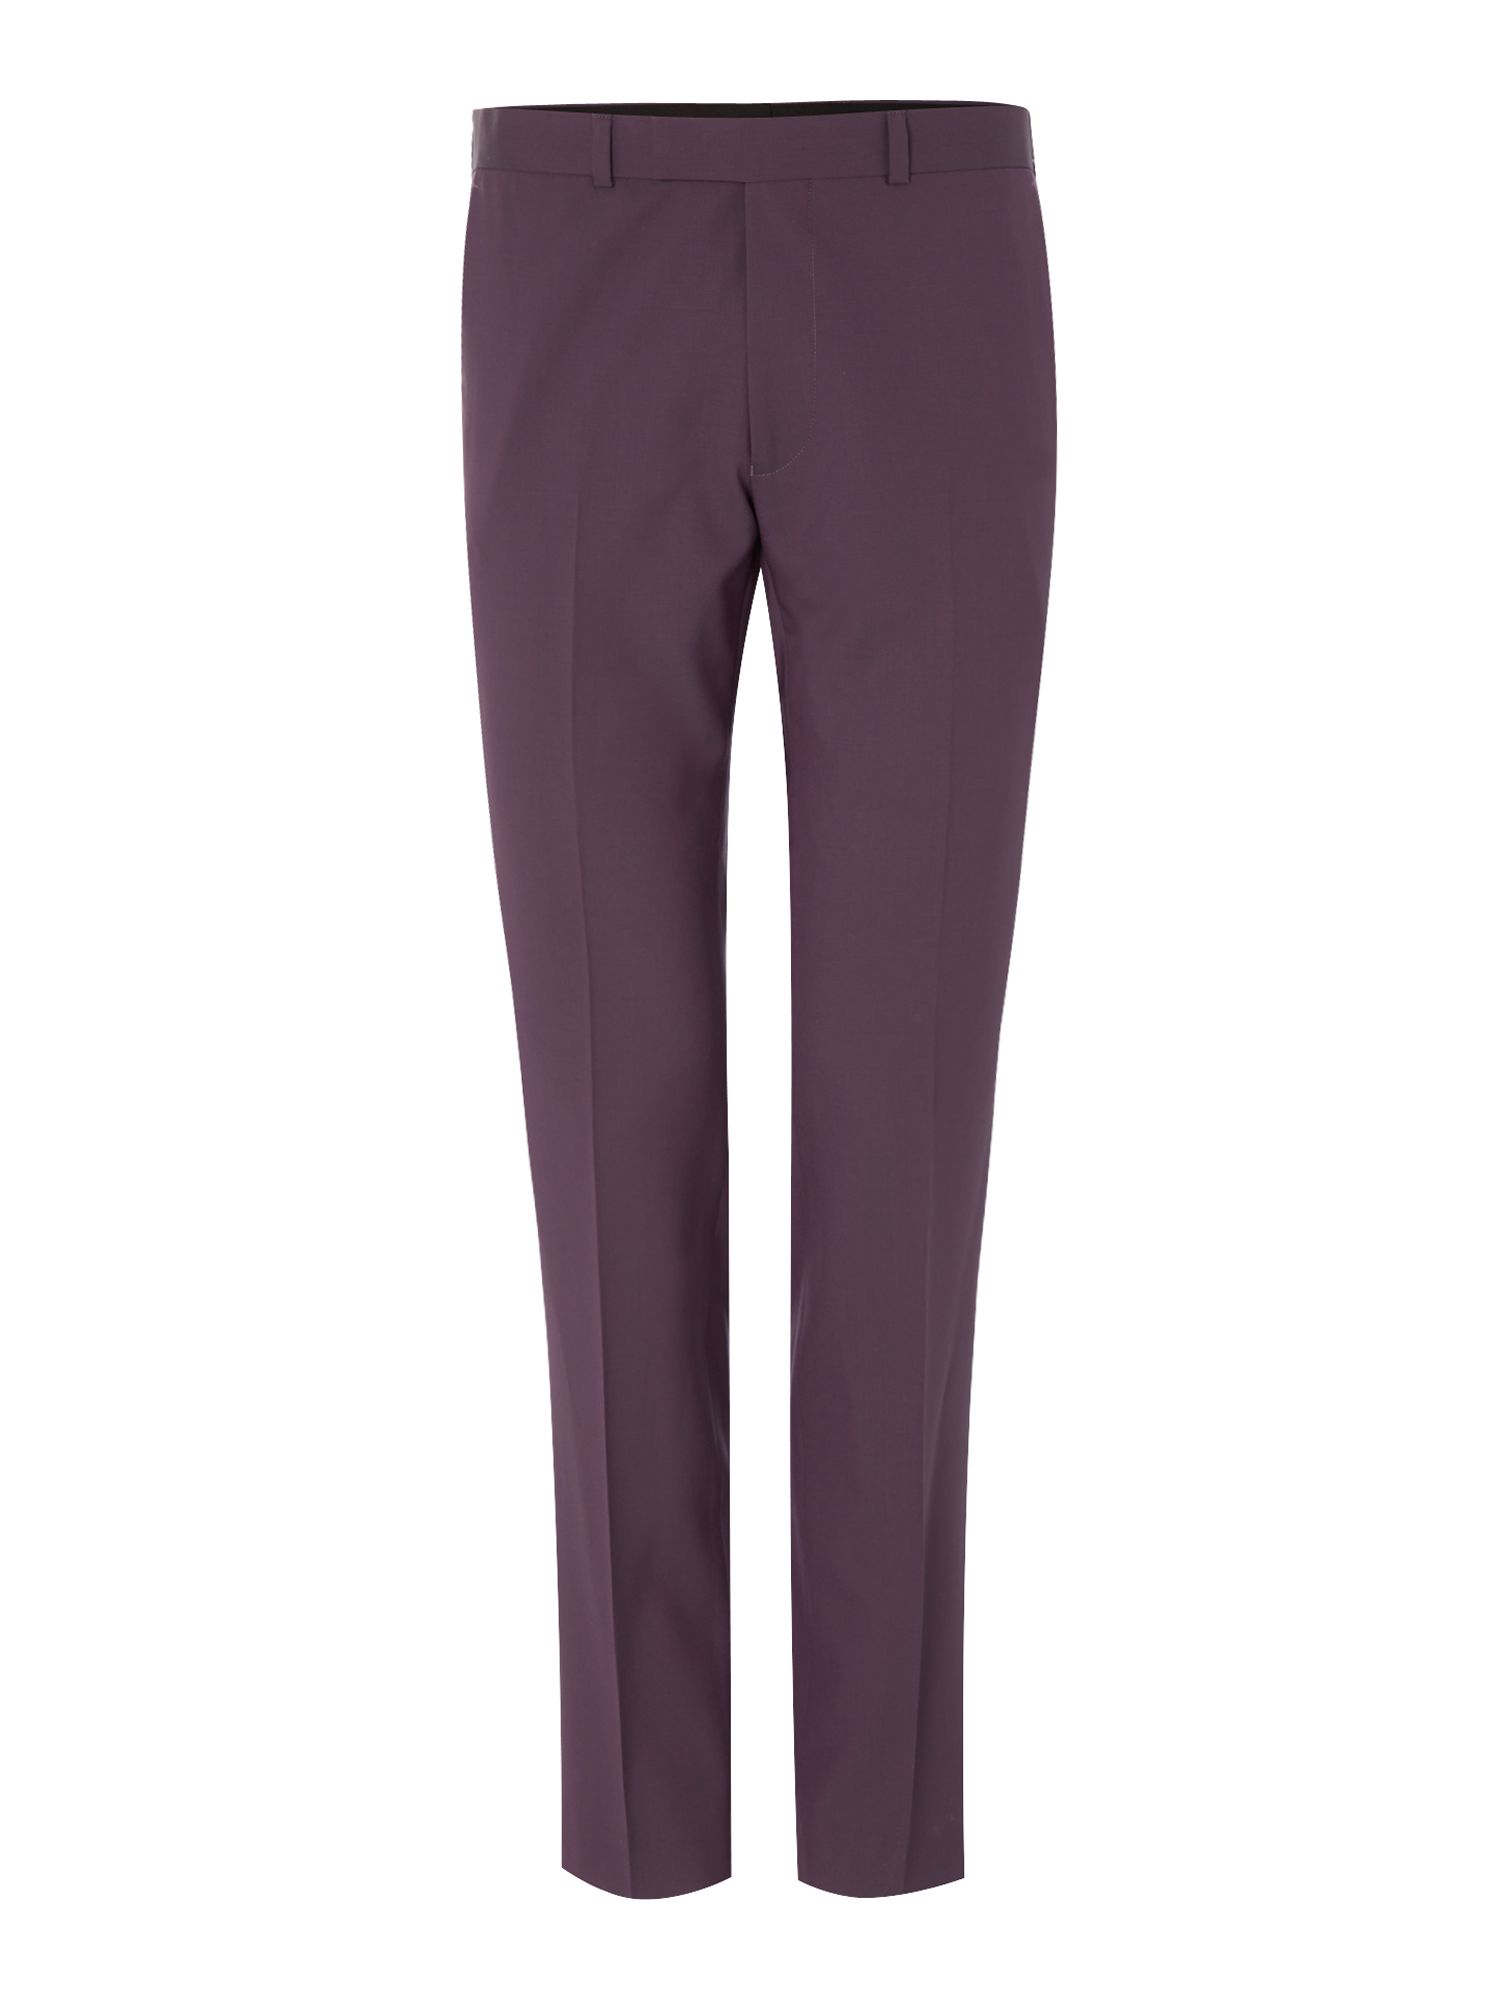 Norwalk Slim Trousers with Jet Pockets